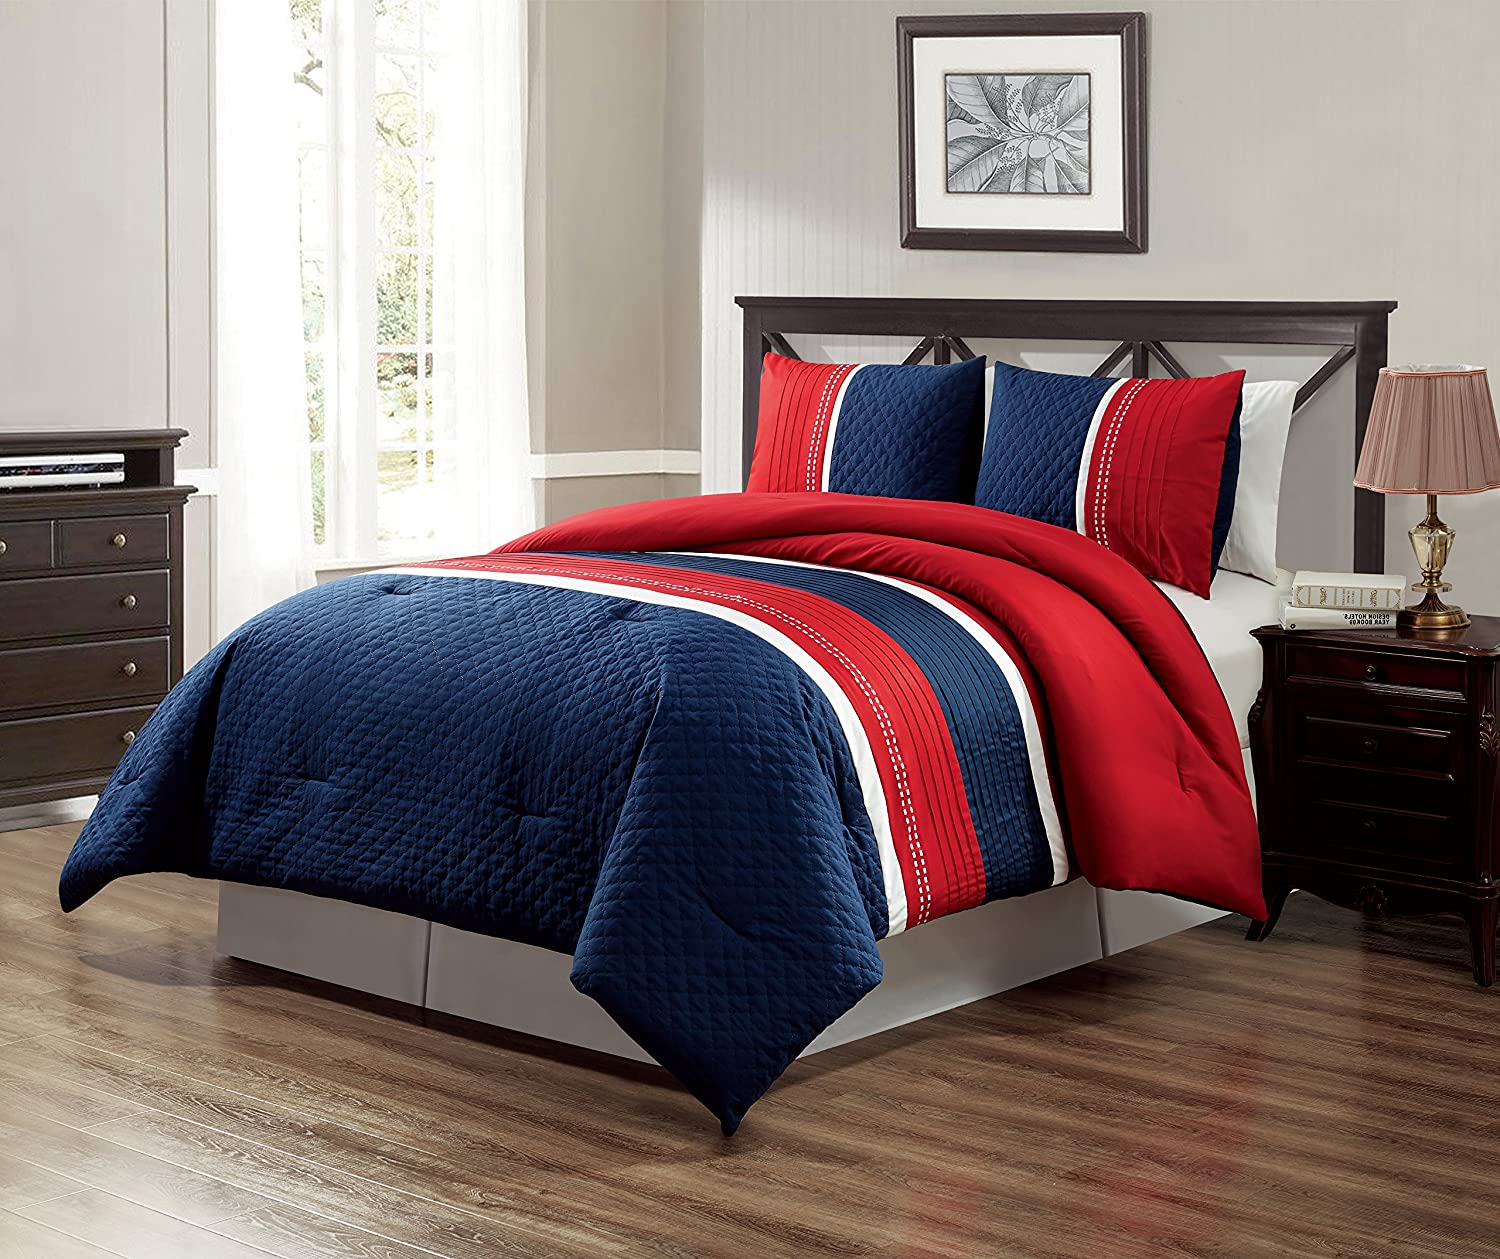 New 8 Piece Navy Full Size Comforter Set Bedspread Bed in a Bag Bedding Sheets